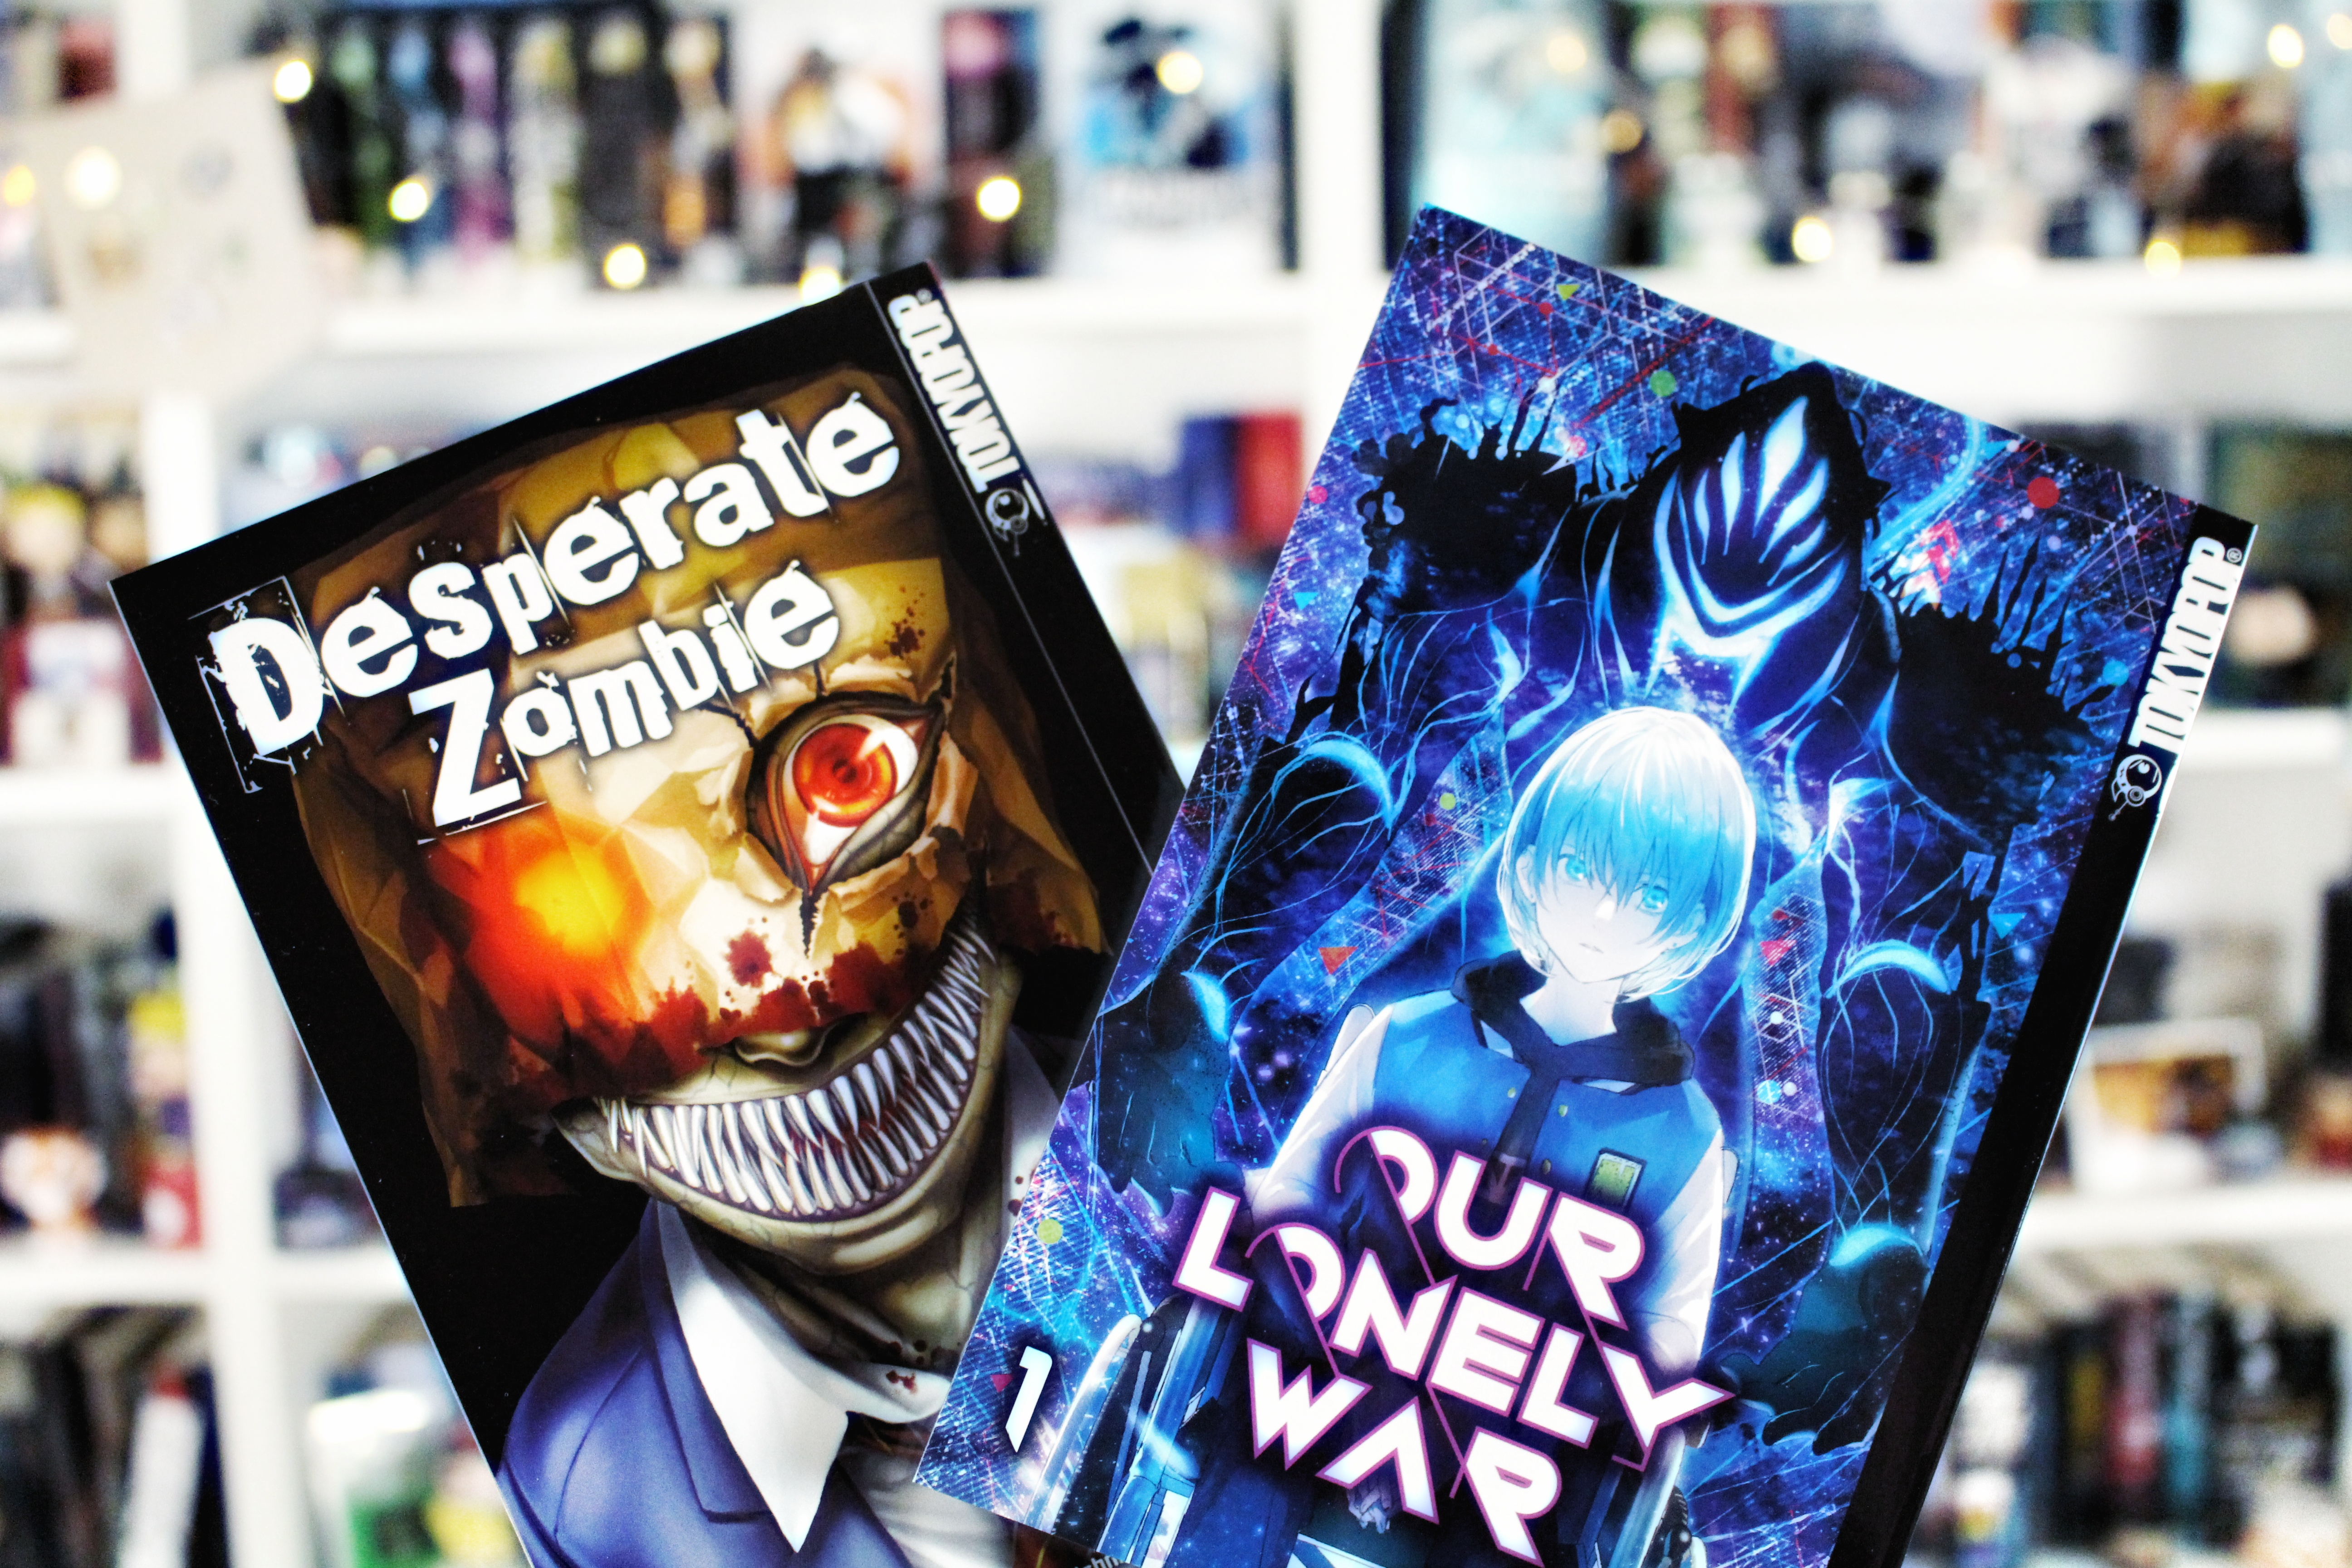 Rezension | Desperate Zombie & Our Lonely War